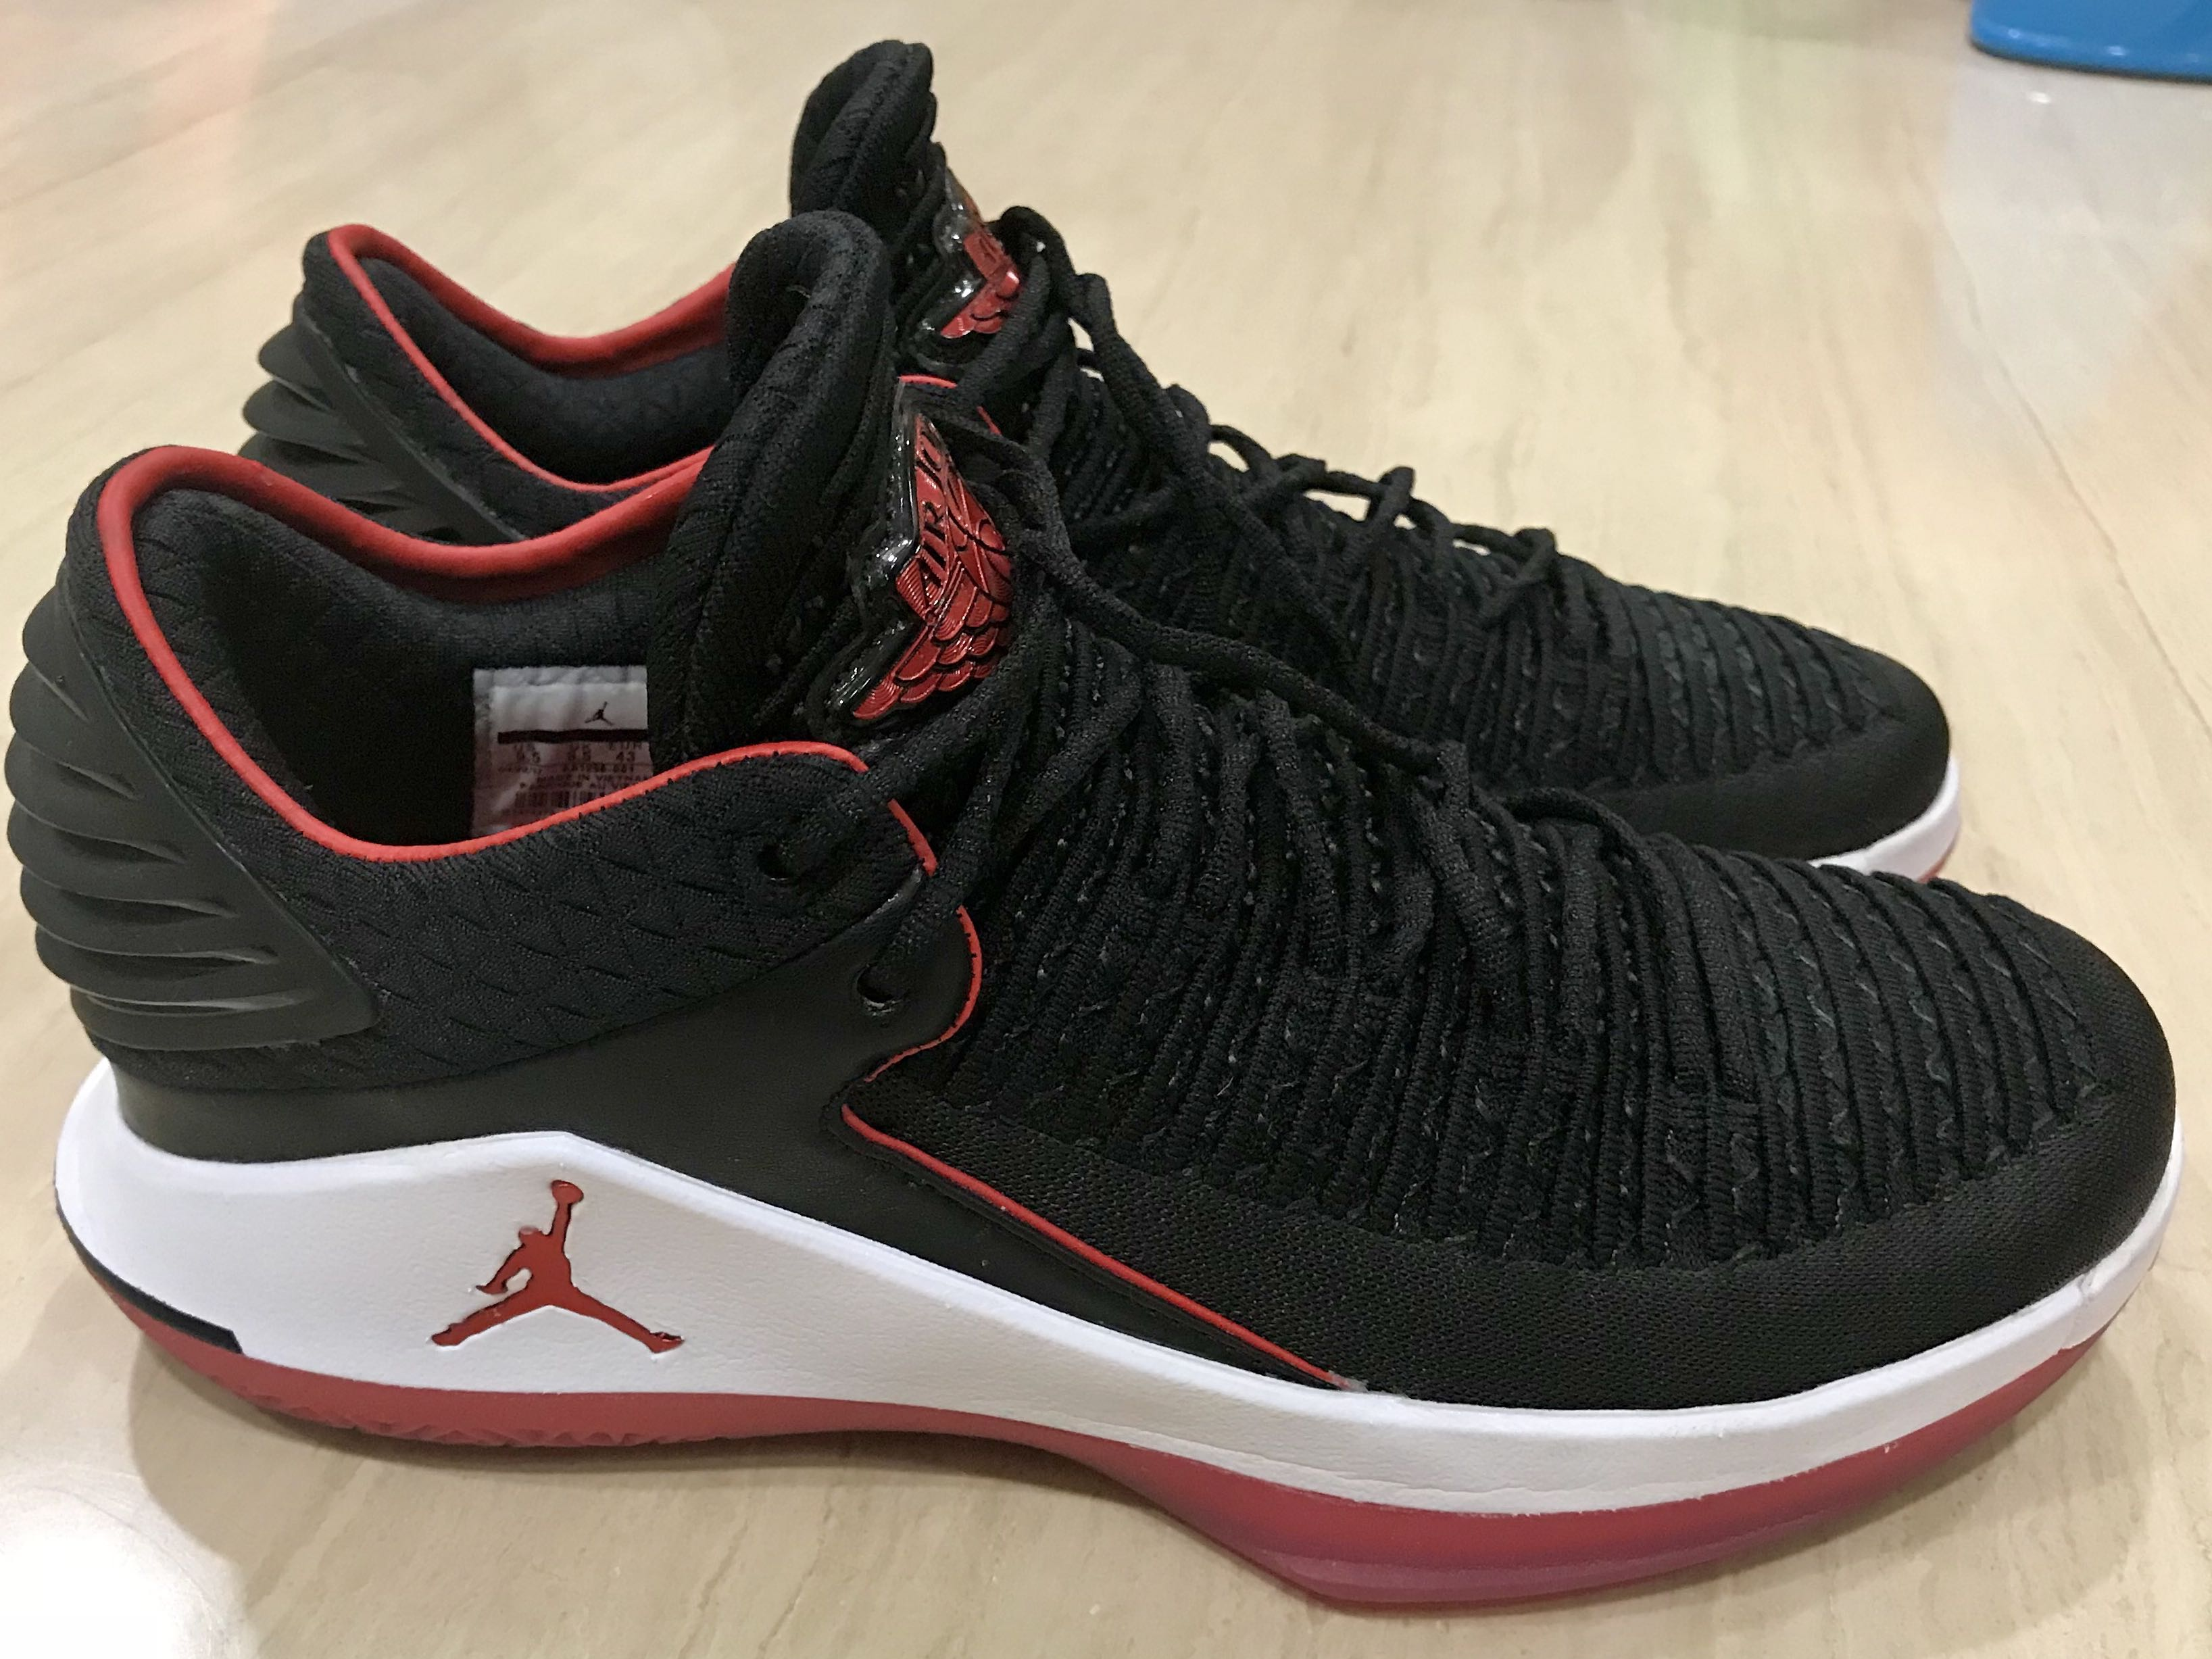 "889c5ffab4d6 Original Nike Flyknit Air Jordan XXXII Low ""Bred"" w  box Size US9.5 Eur43  mint"